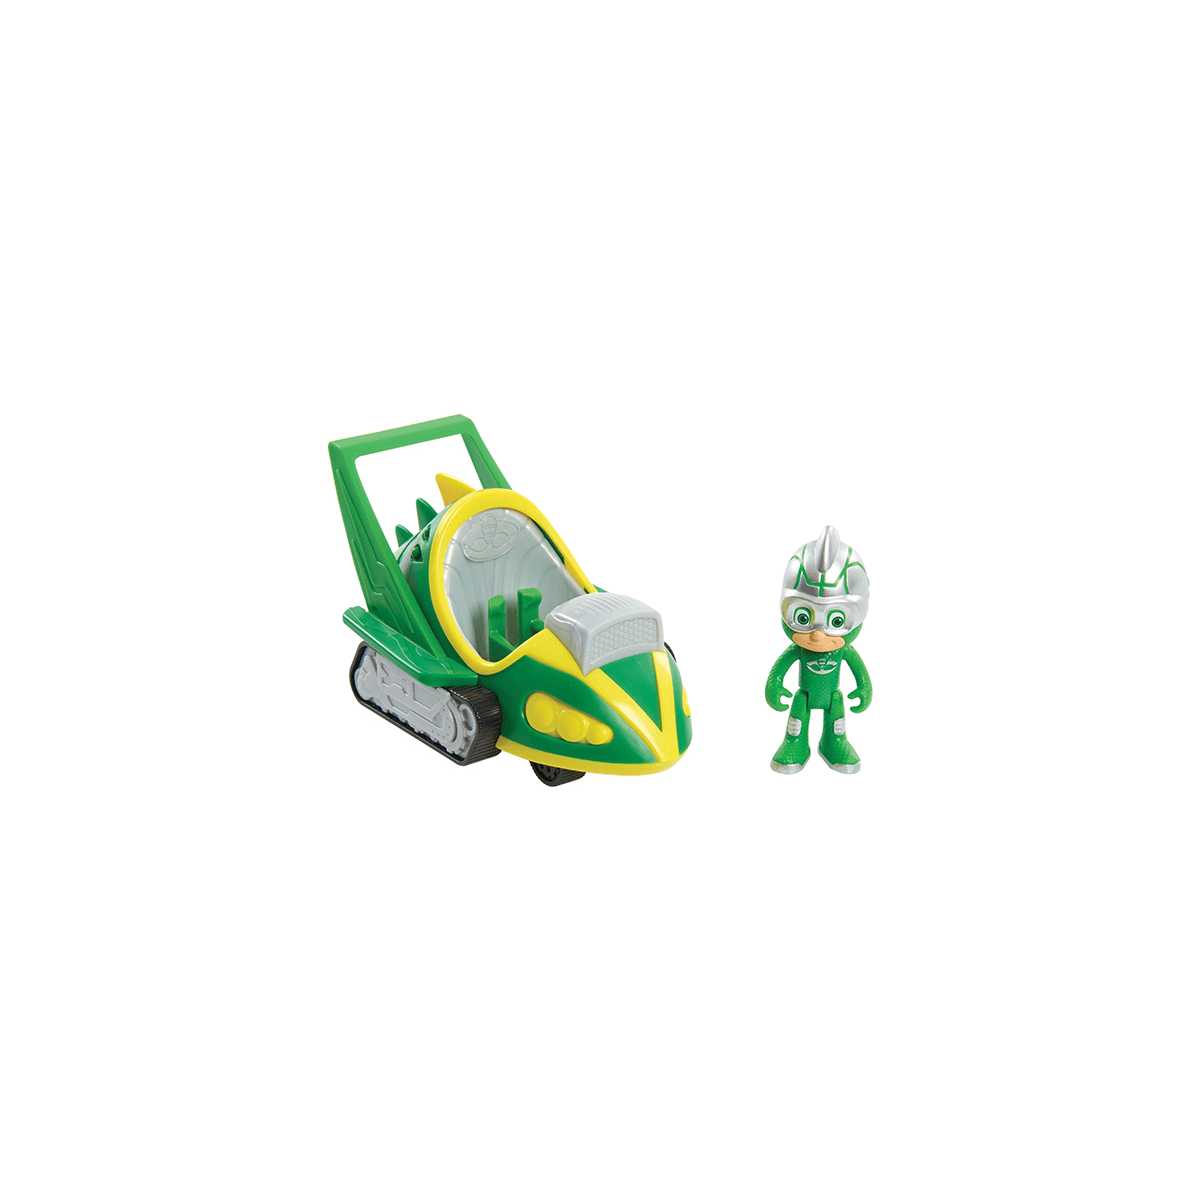 PJ Masks Speed Booster Vehicle & Figure - Gekko from Early Learning Center